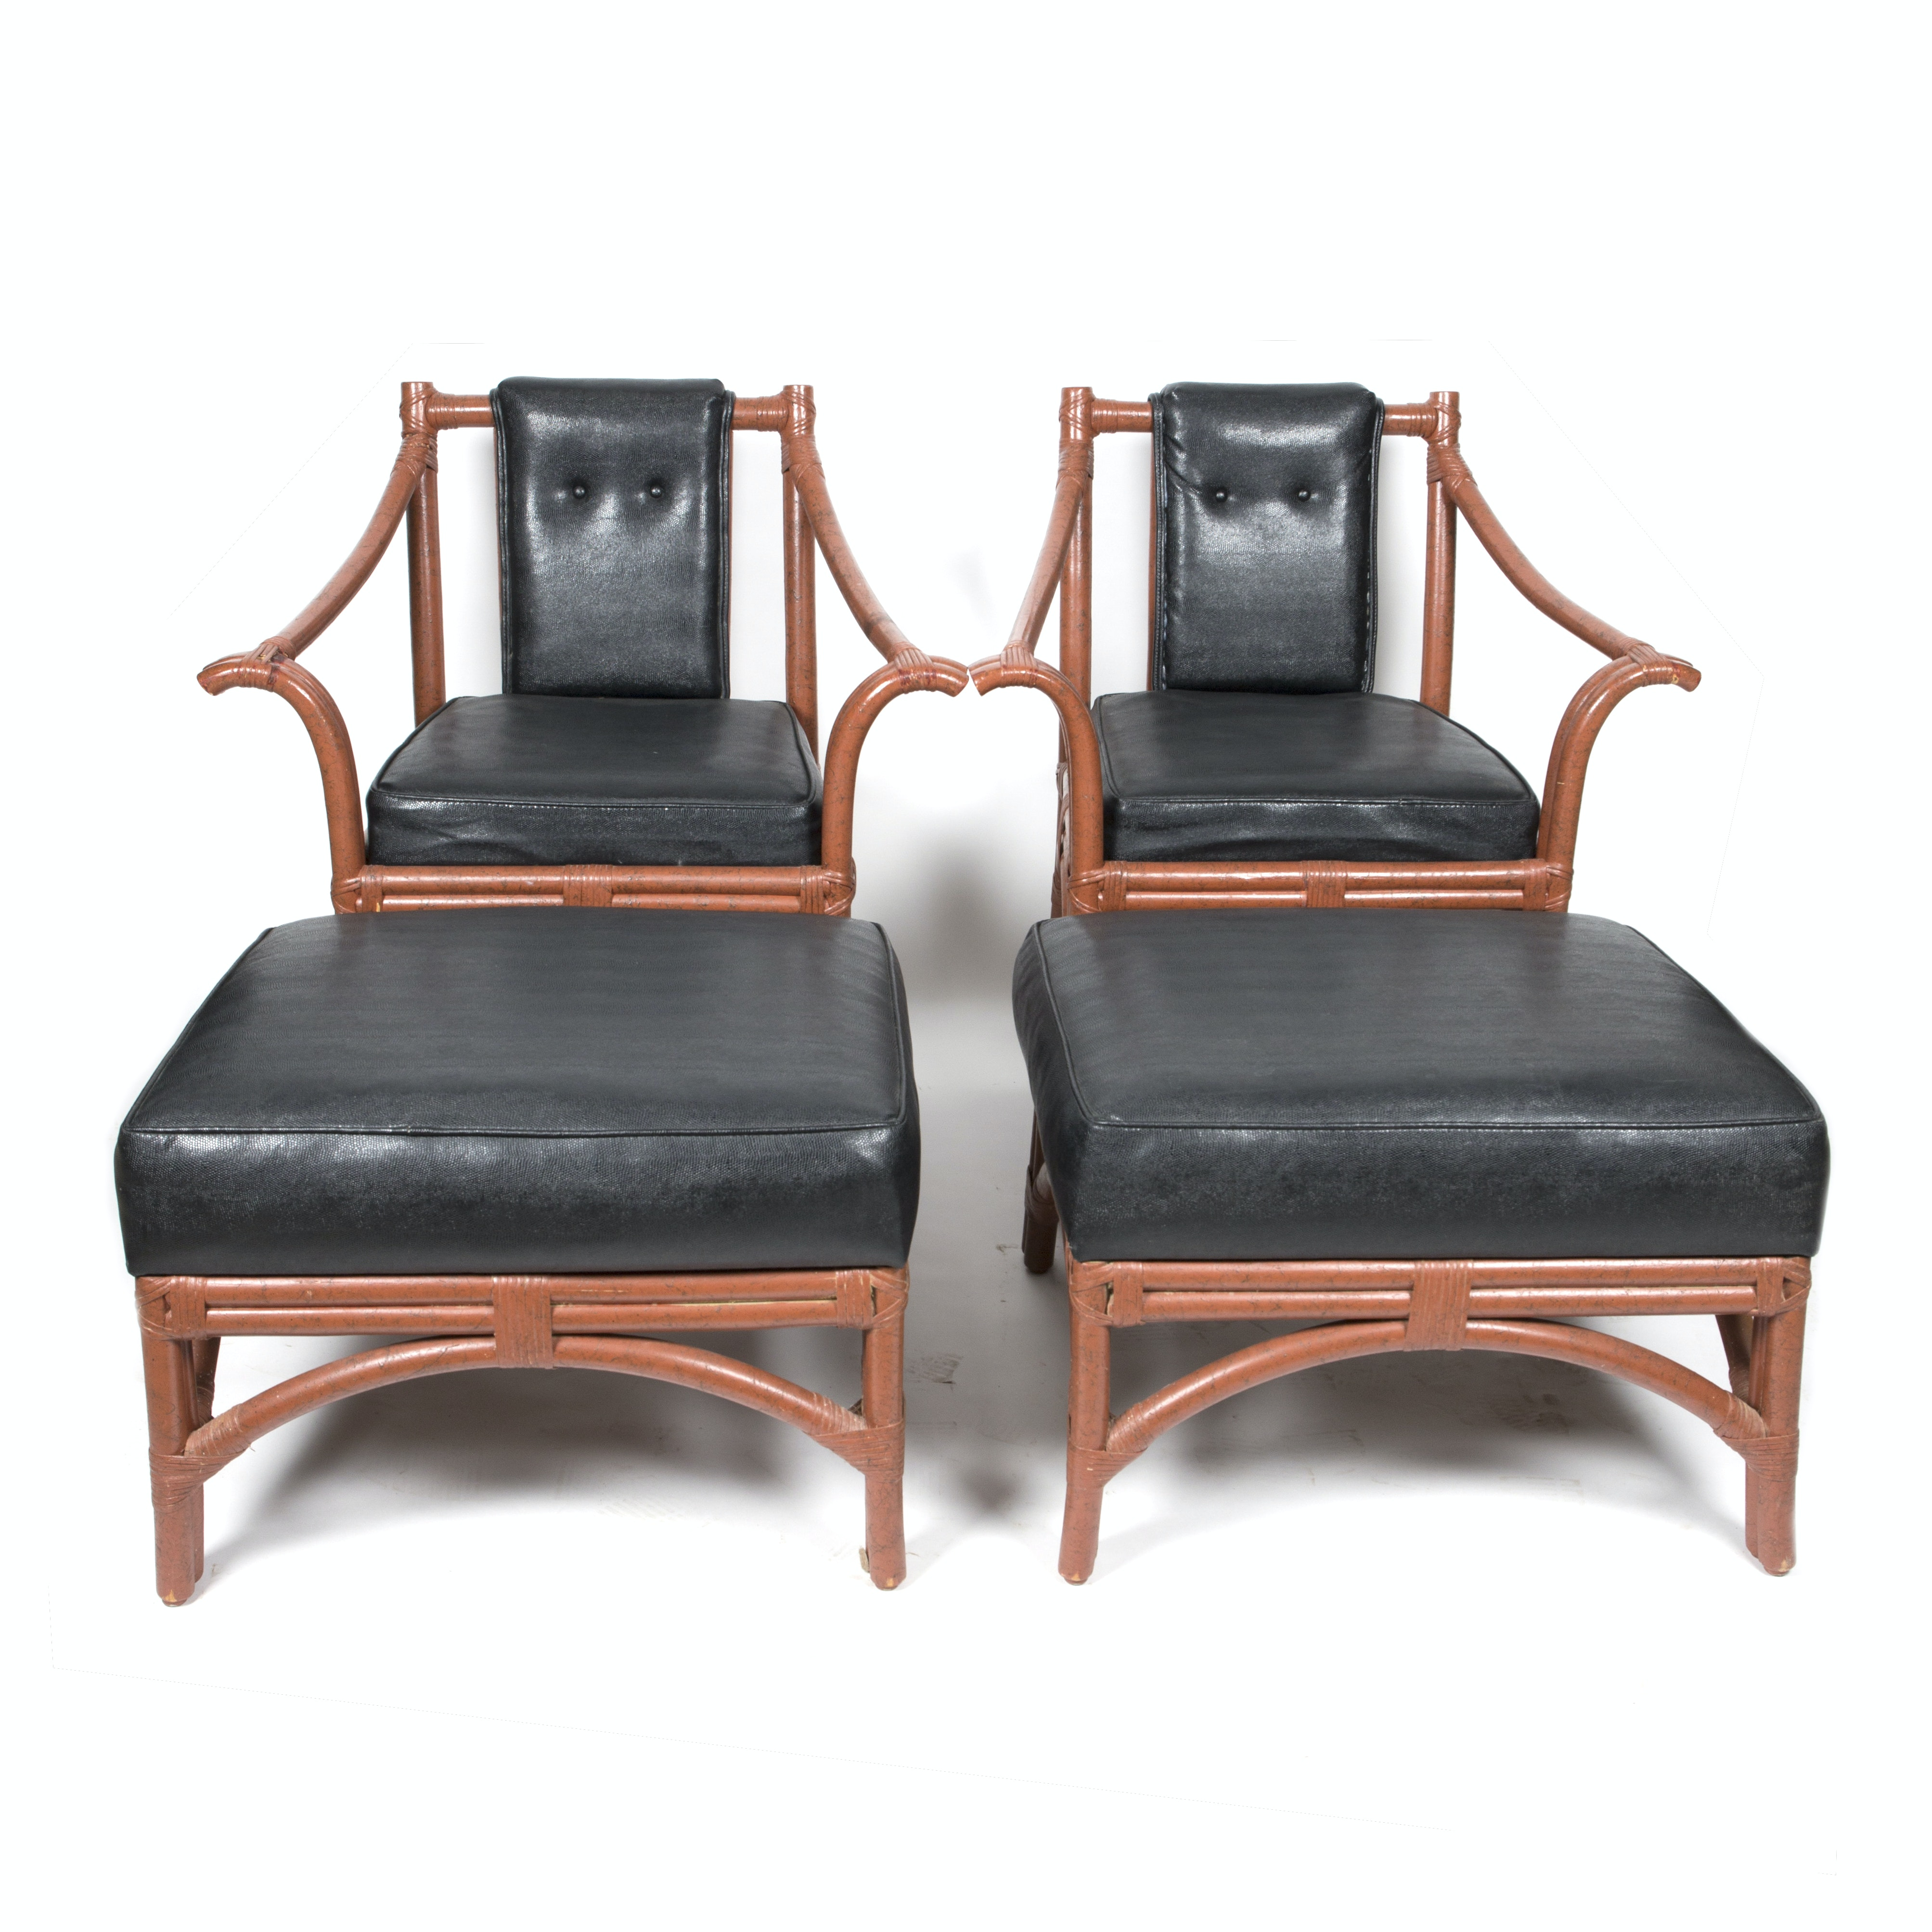 Pair of Ficks Reed Leather and Rattan Chairs and Ottomans